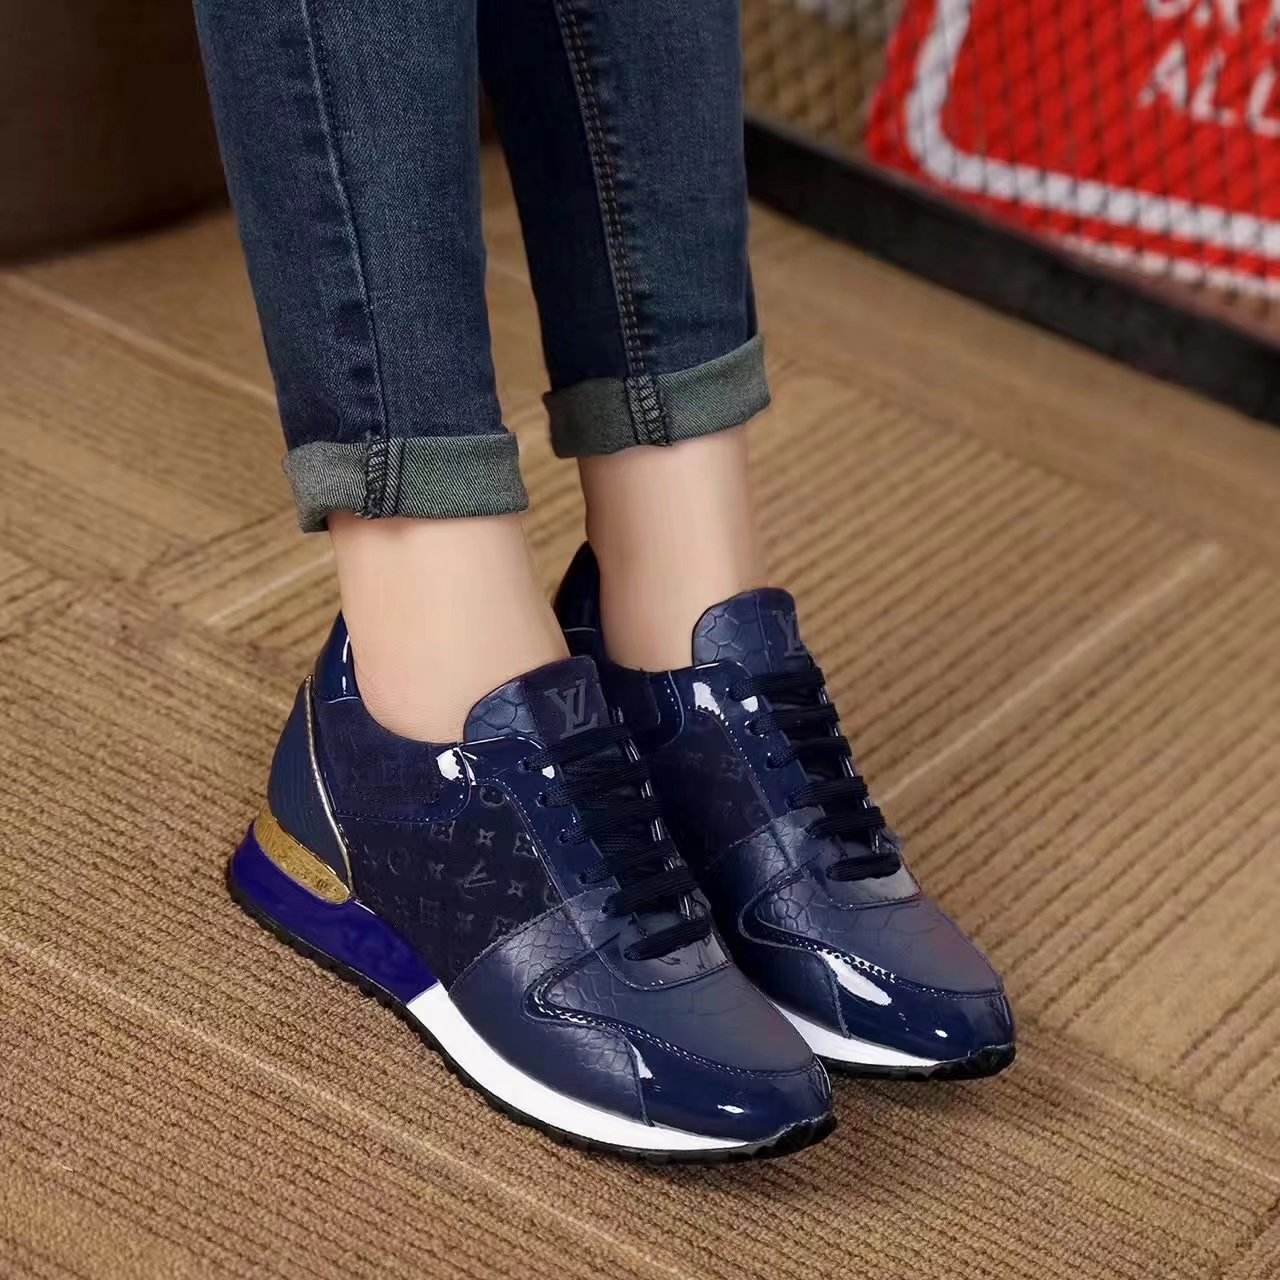 Louis vuitton shoes women - page1,louis vuitton new pattern women leisure  sports shoes embossing 6b7b2f534ac7